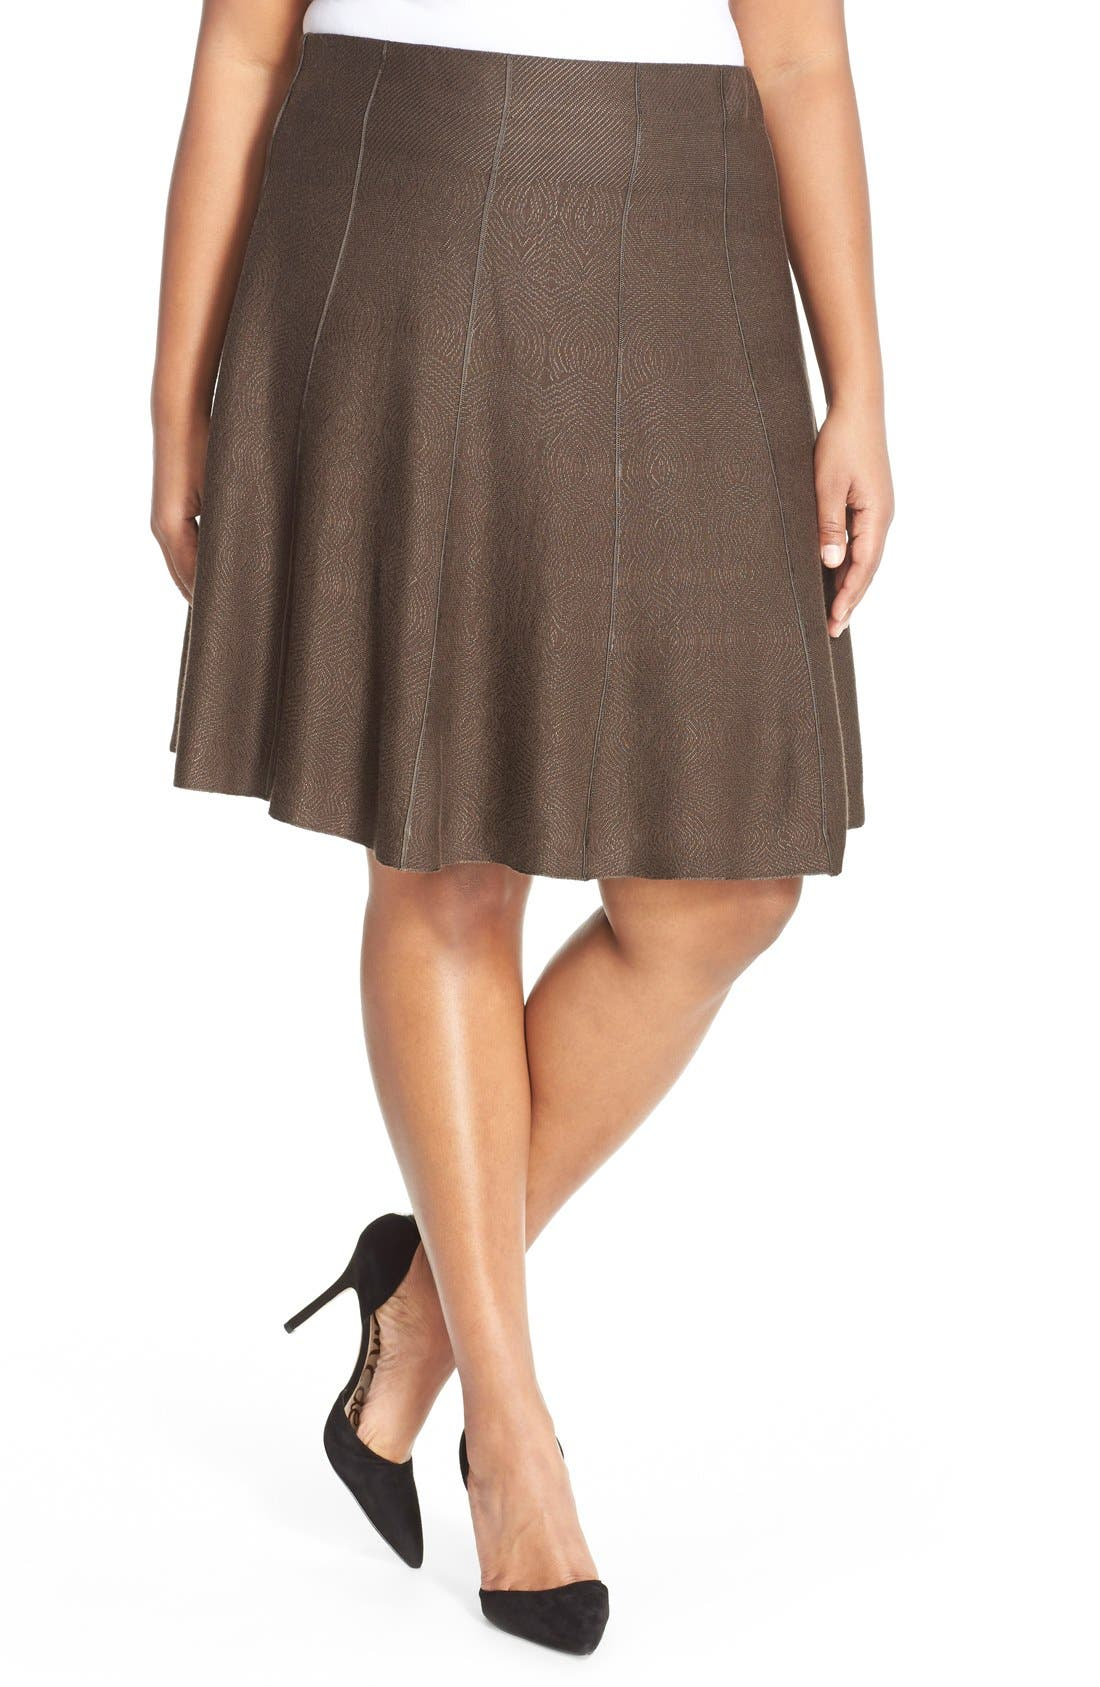 Alternate Image 1 Selected - NIC+ZOE 'Twirl Flirt' Paneled Skirt (Plus Size)